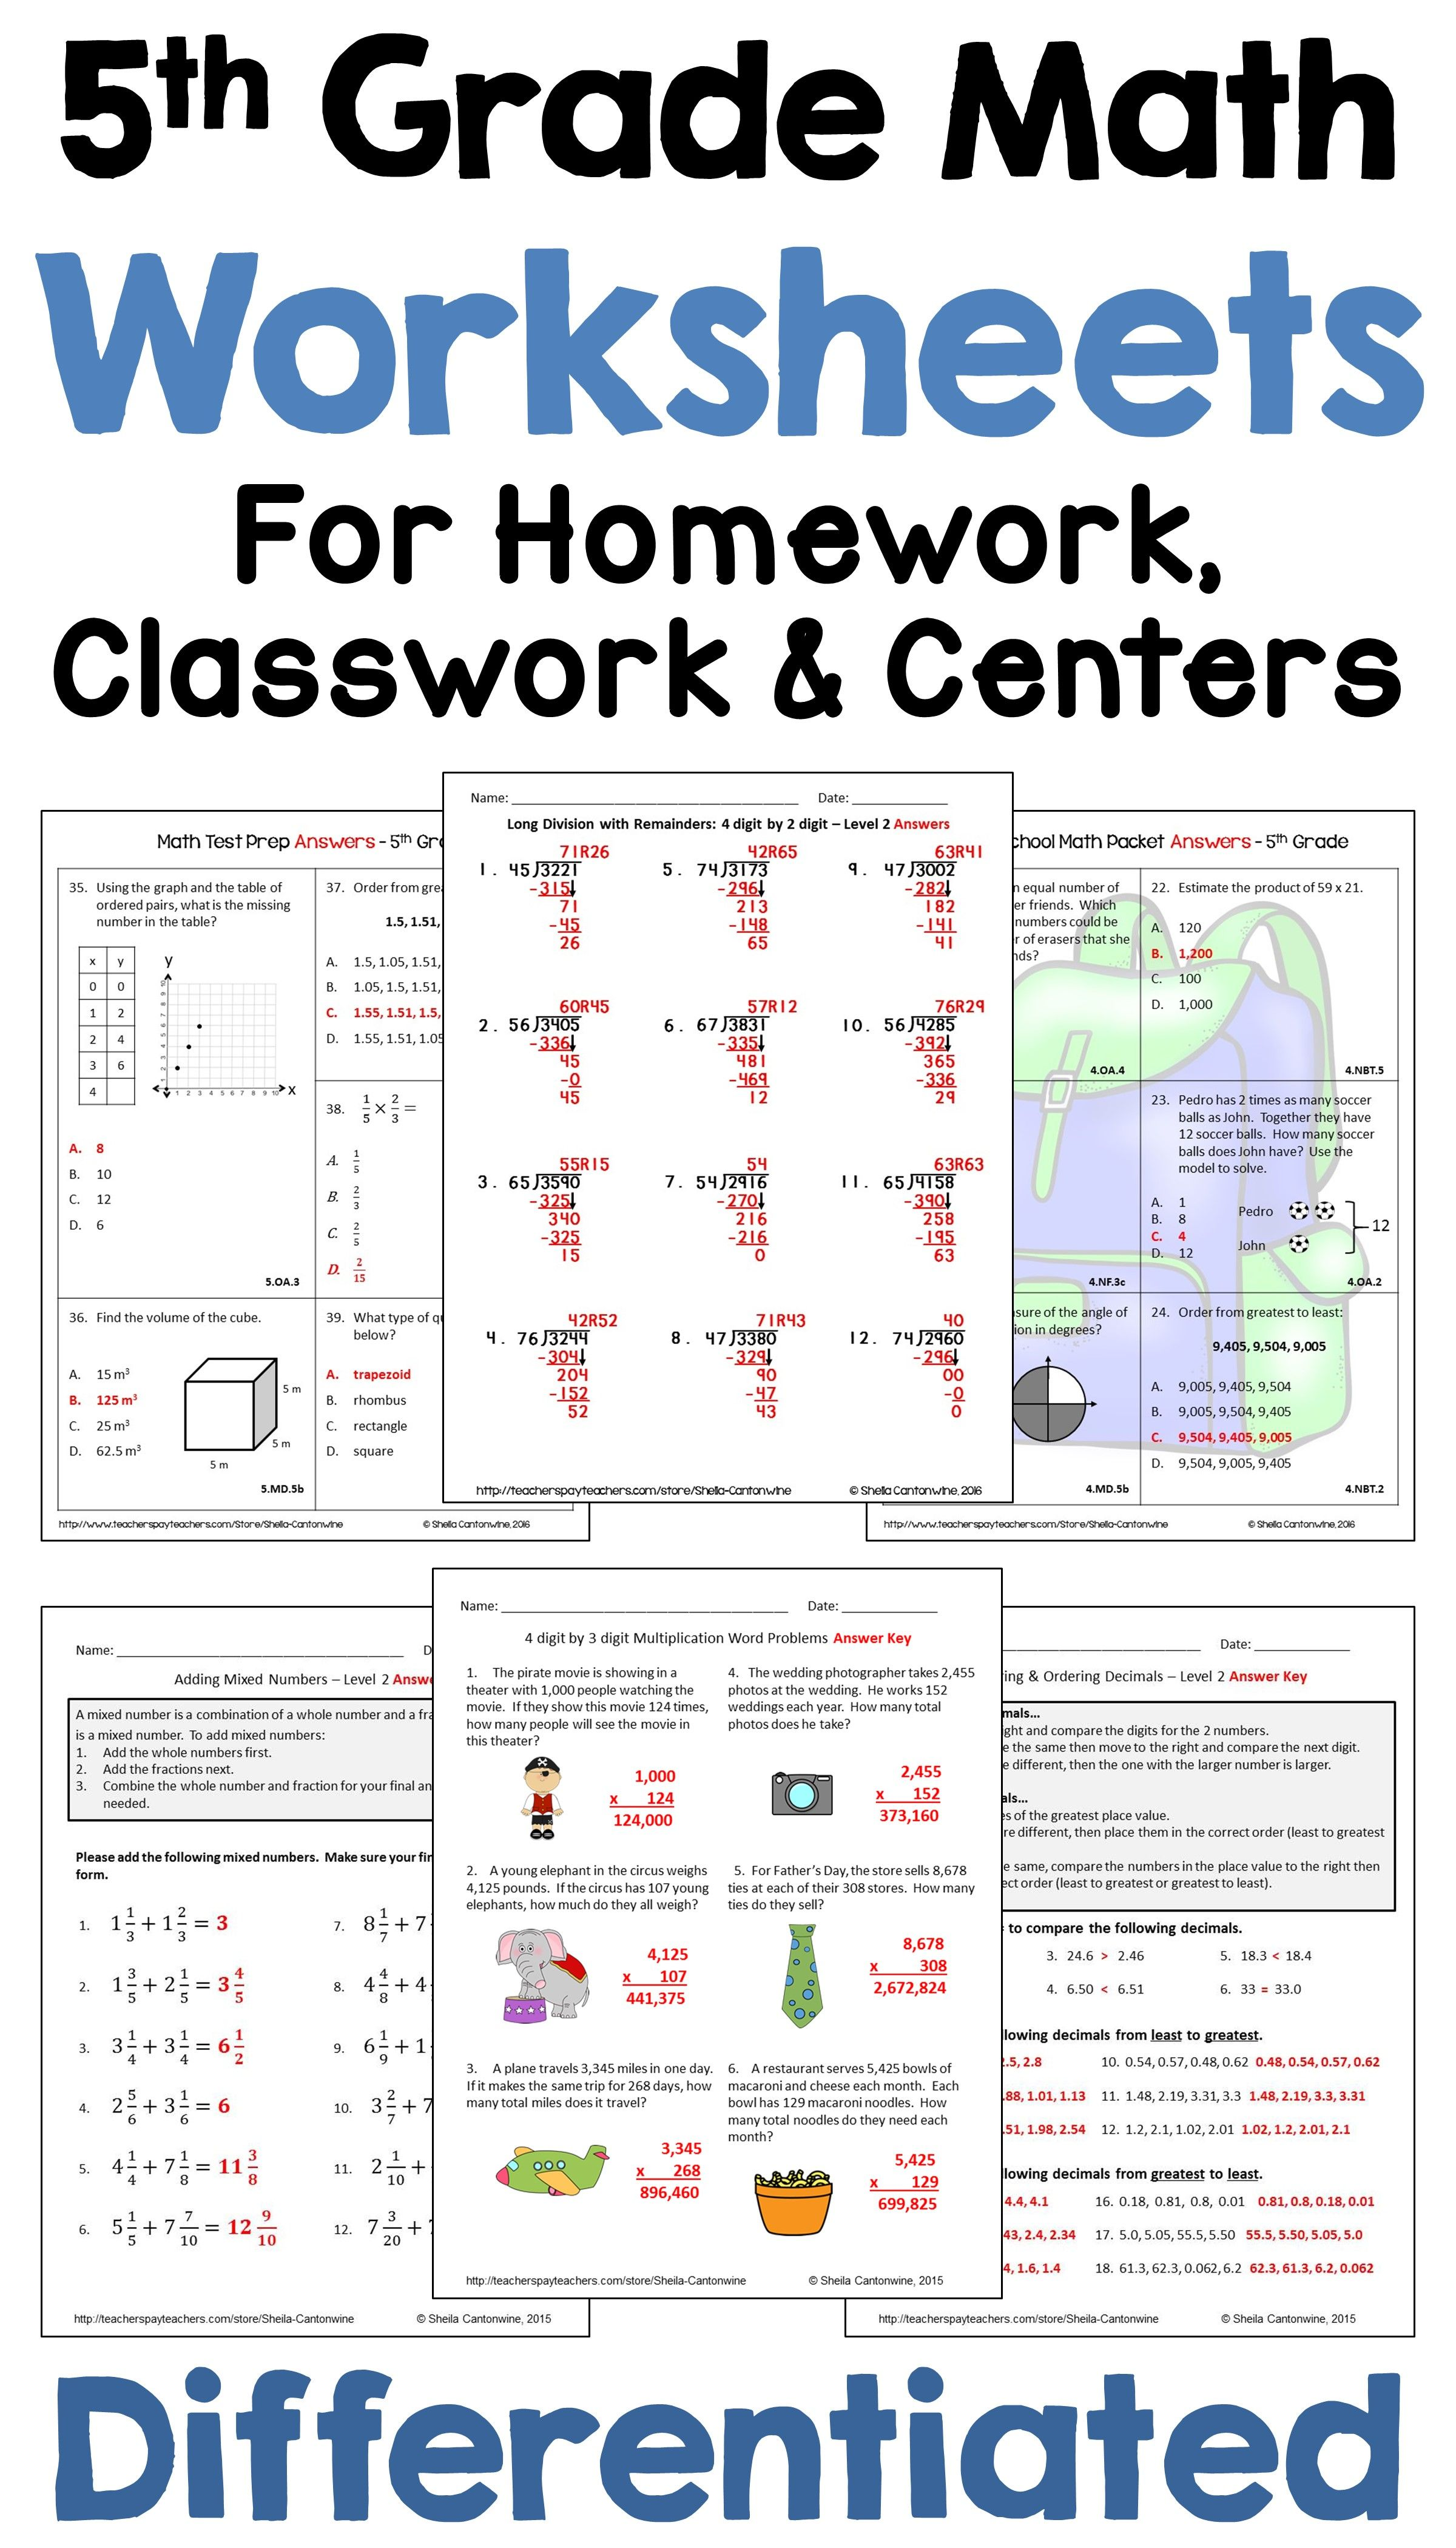 5th Grade Math Differentiated Worksheets for Homework [ 4200 x 2400 Pixel ]